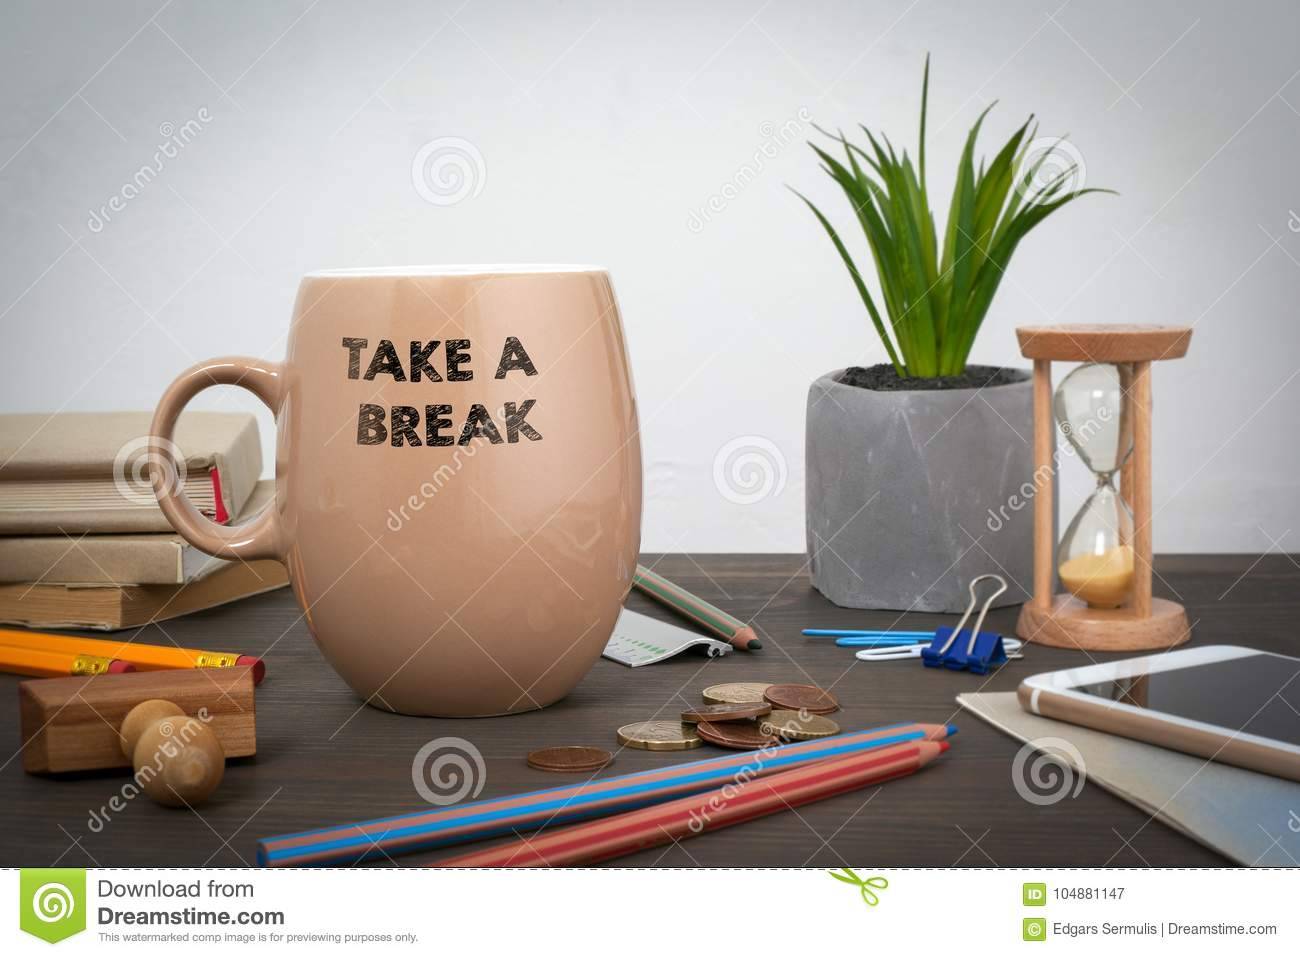 Take a break. Business and a success background